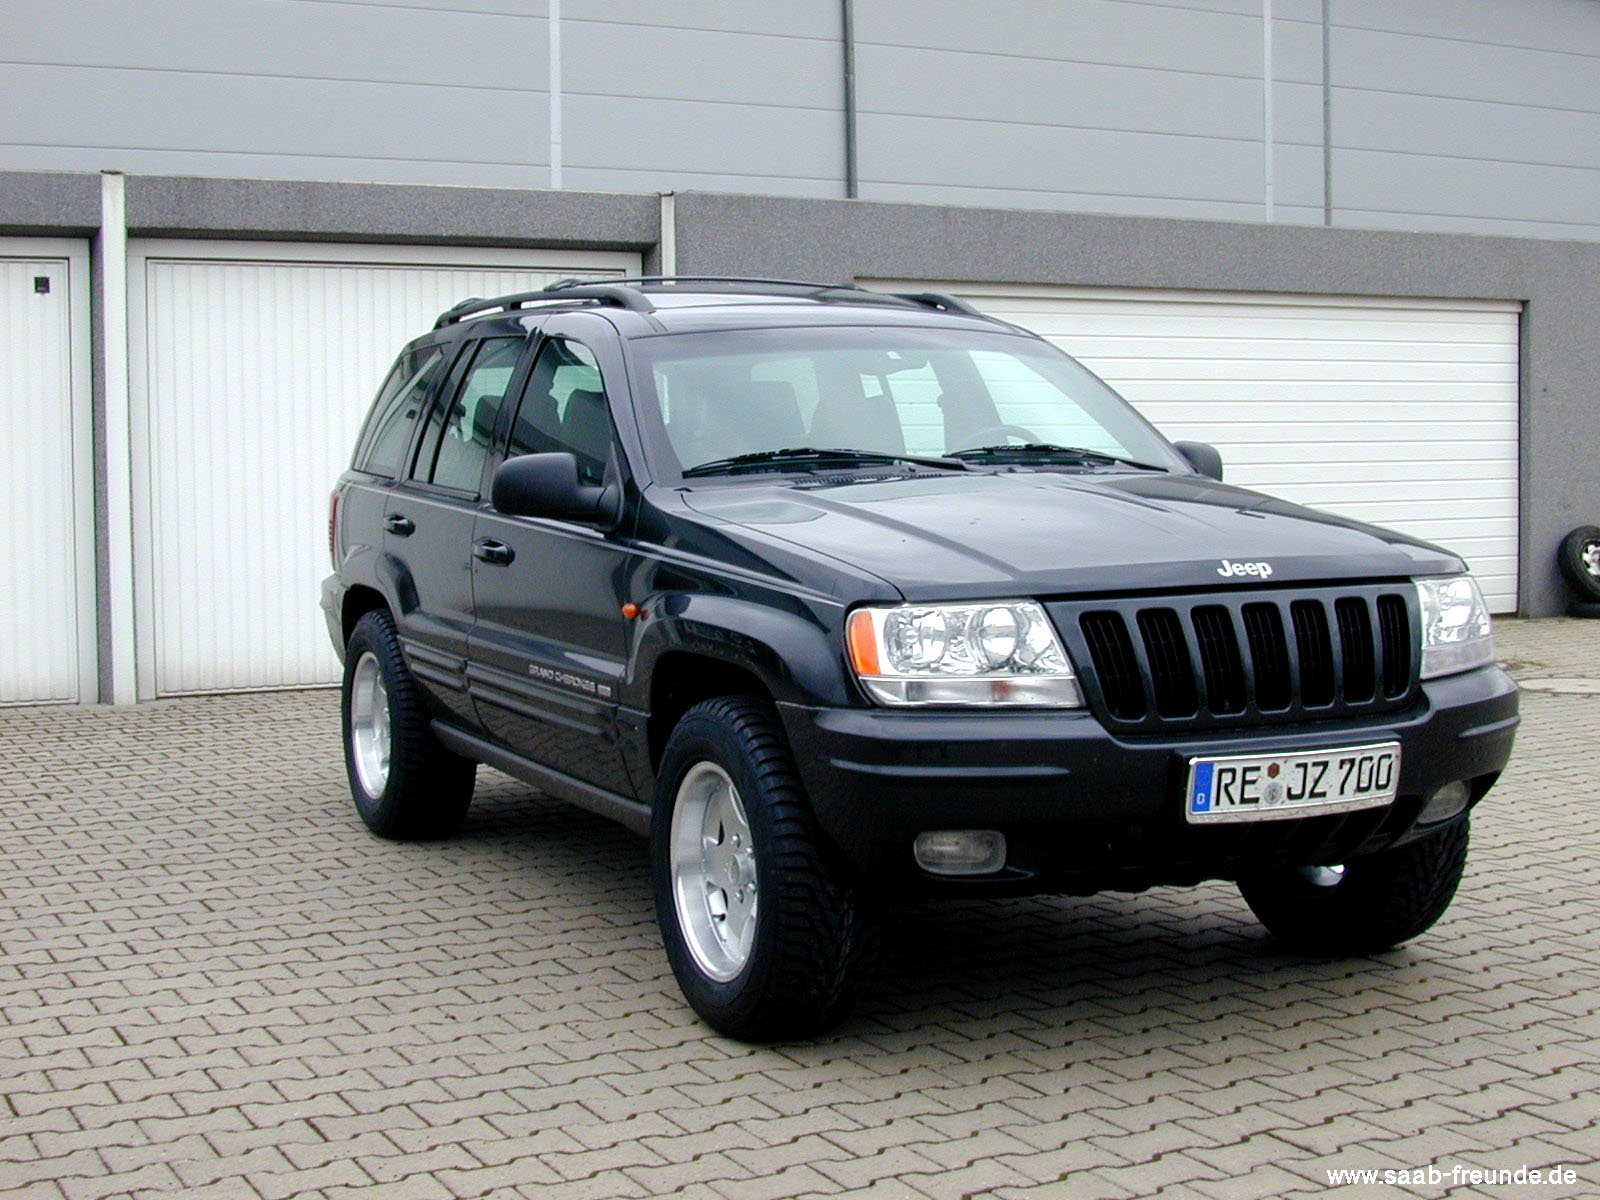 Jeep Grand Cherokee WJ 6,1 Ltr. V8